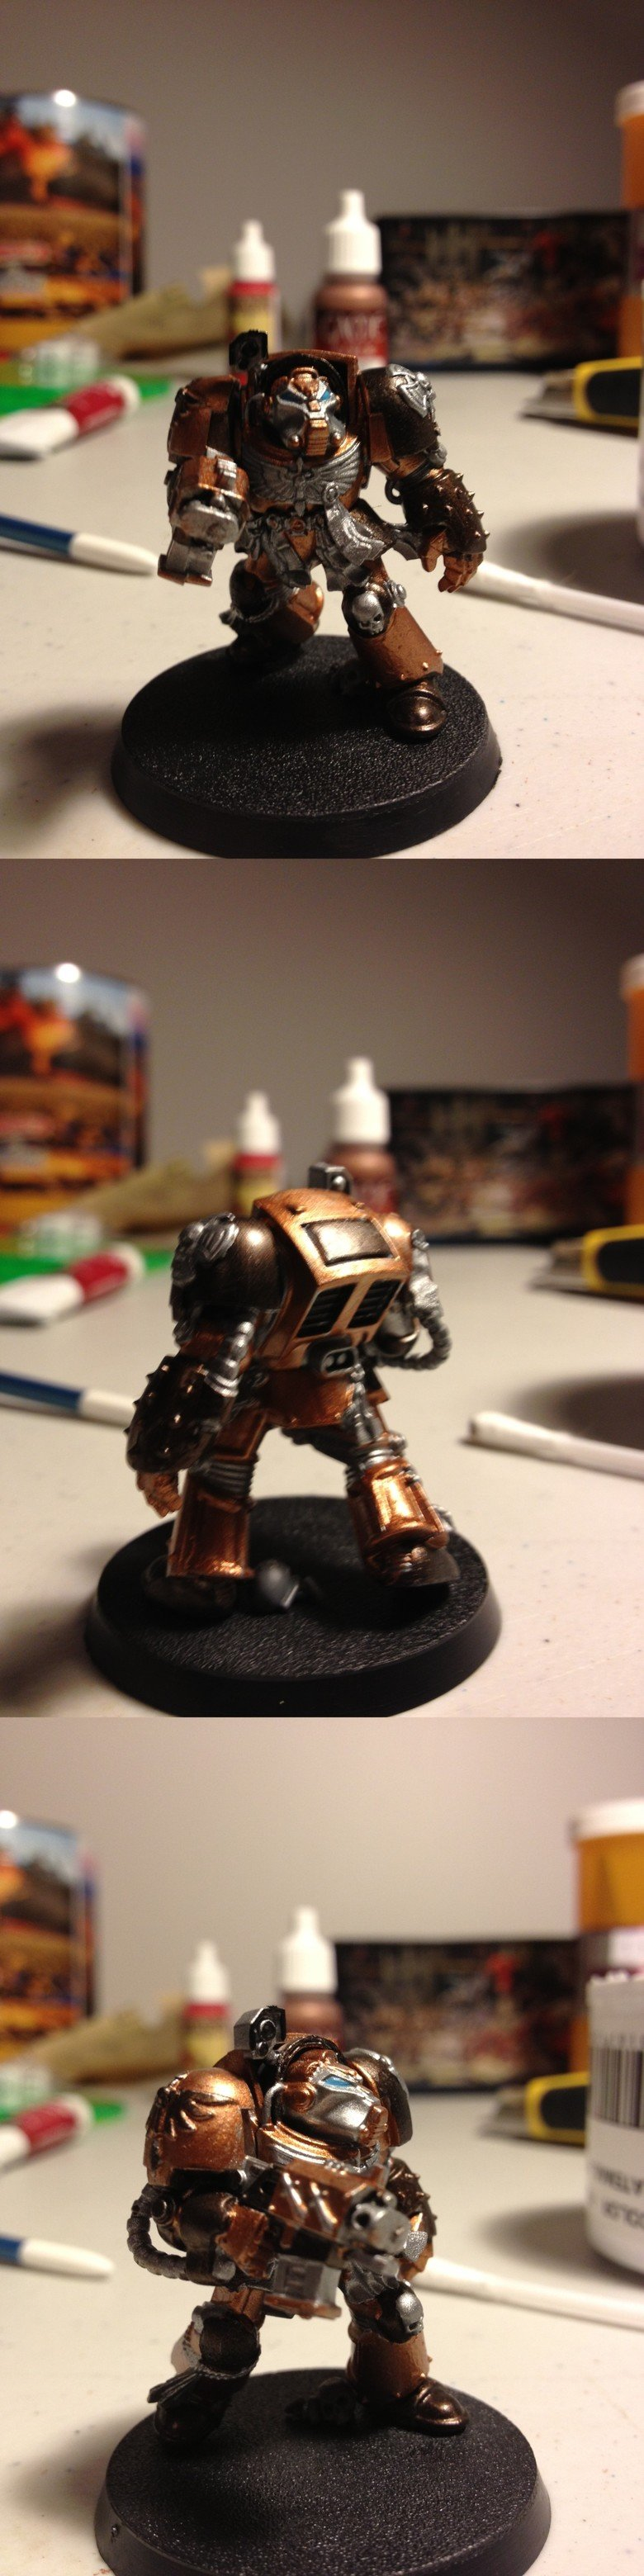 The Terminator of Brass. And 2brass/1black mixture, along with silver and 'enchanted blue.' I feel that this one is much better than the first two units I did.